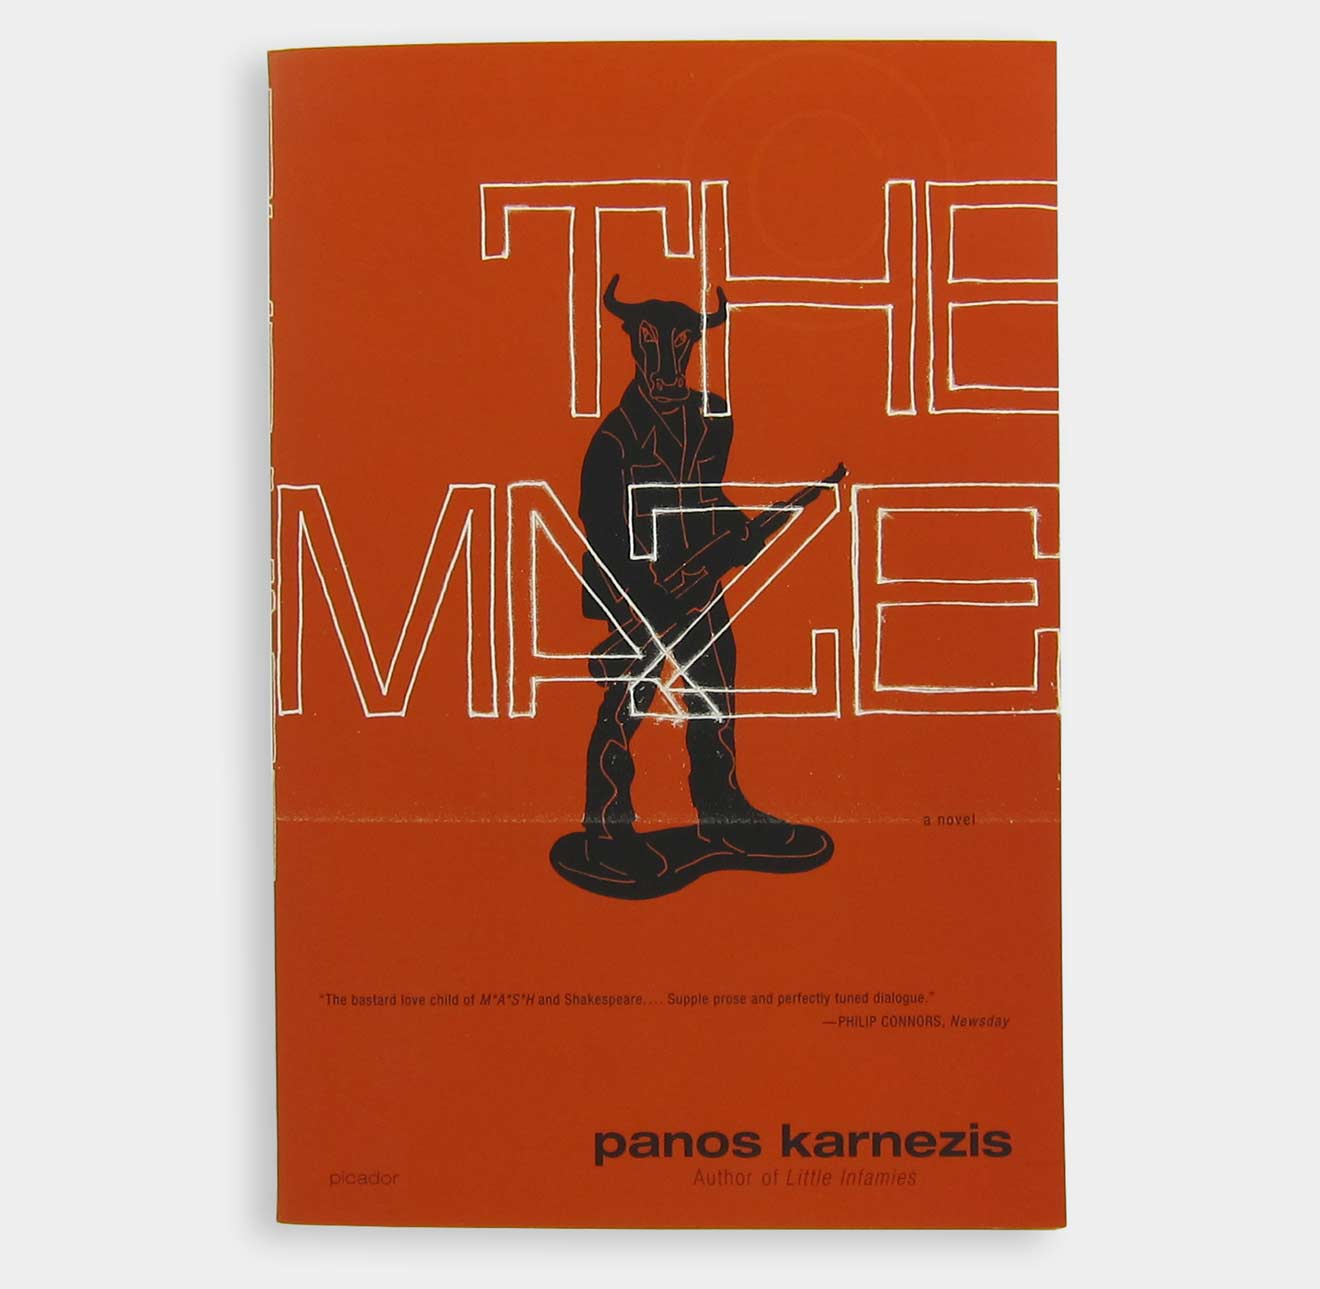 The Maze book cover